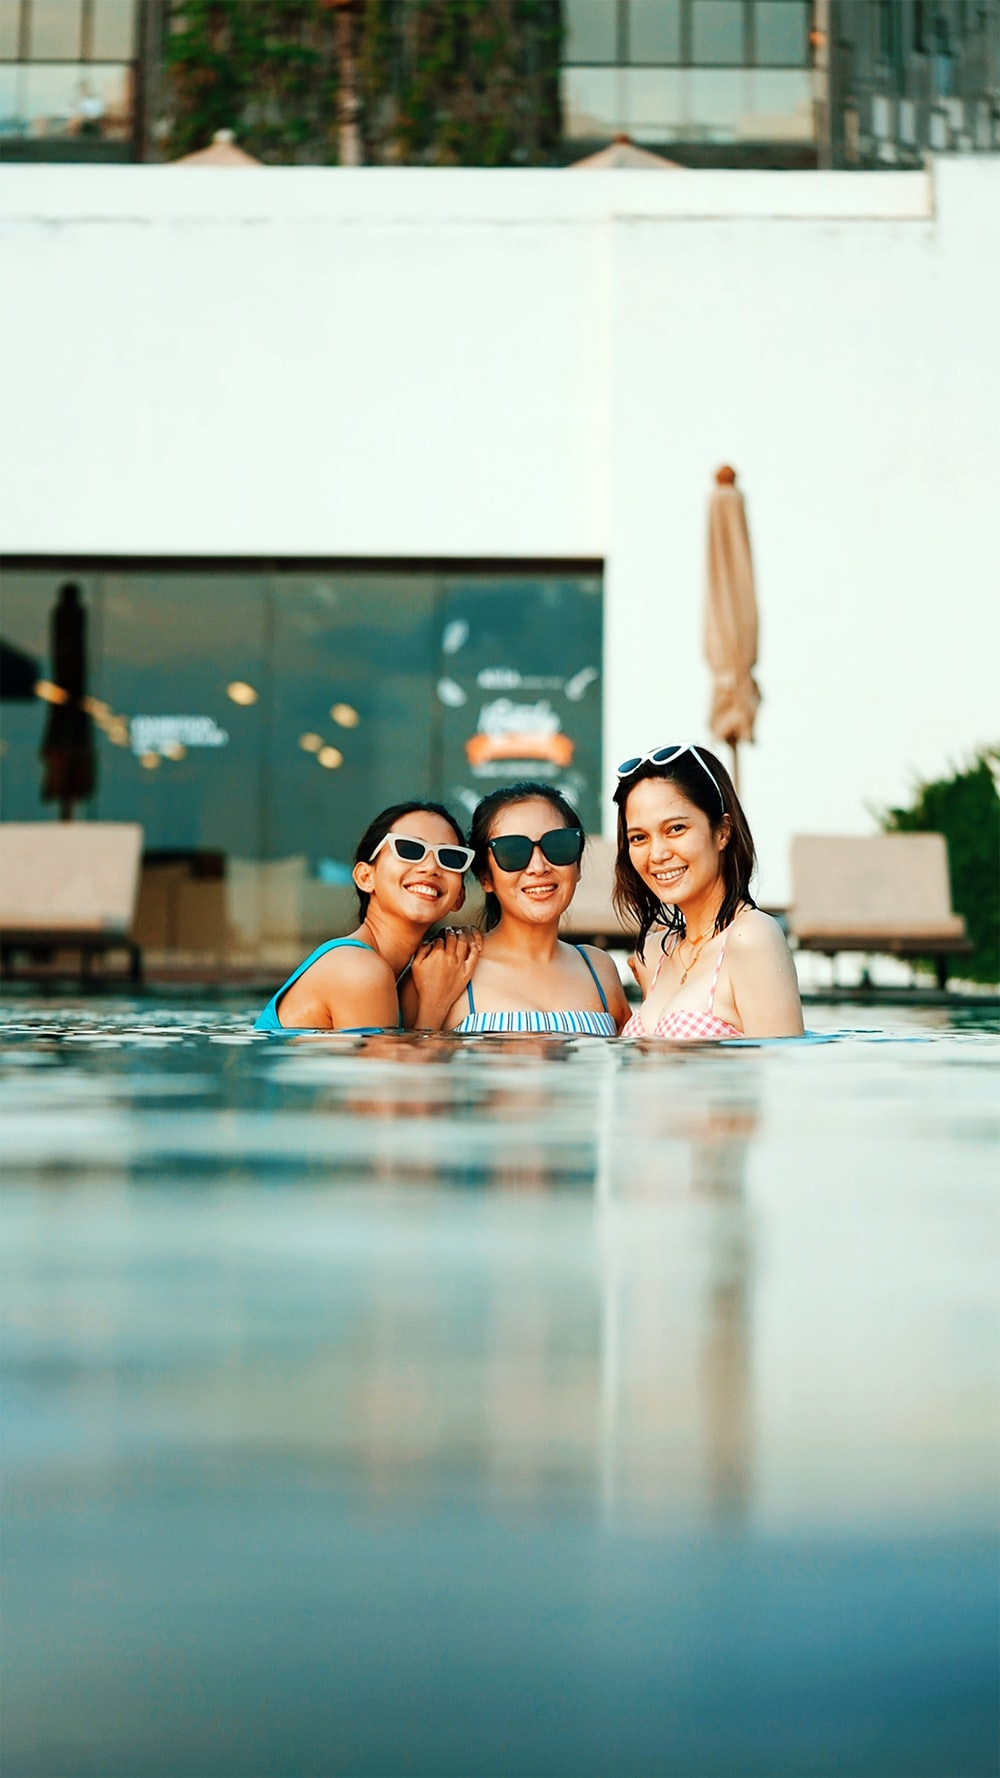 woman in black sunglasses on swimming pool during daytime